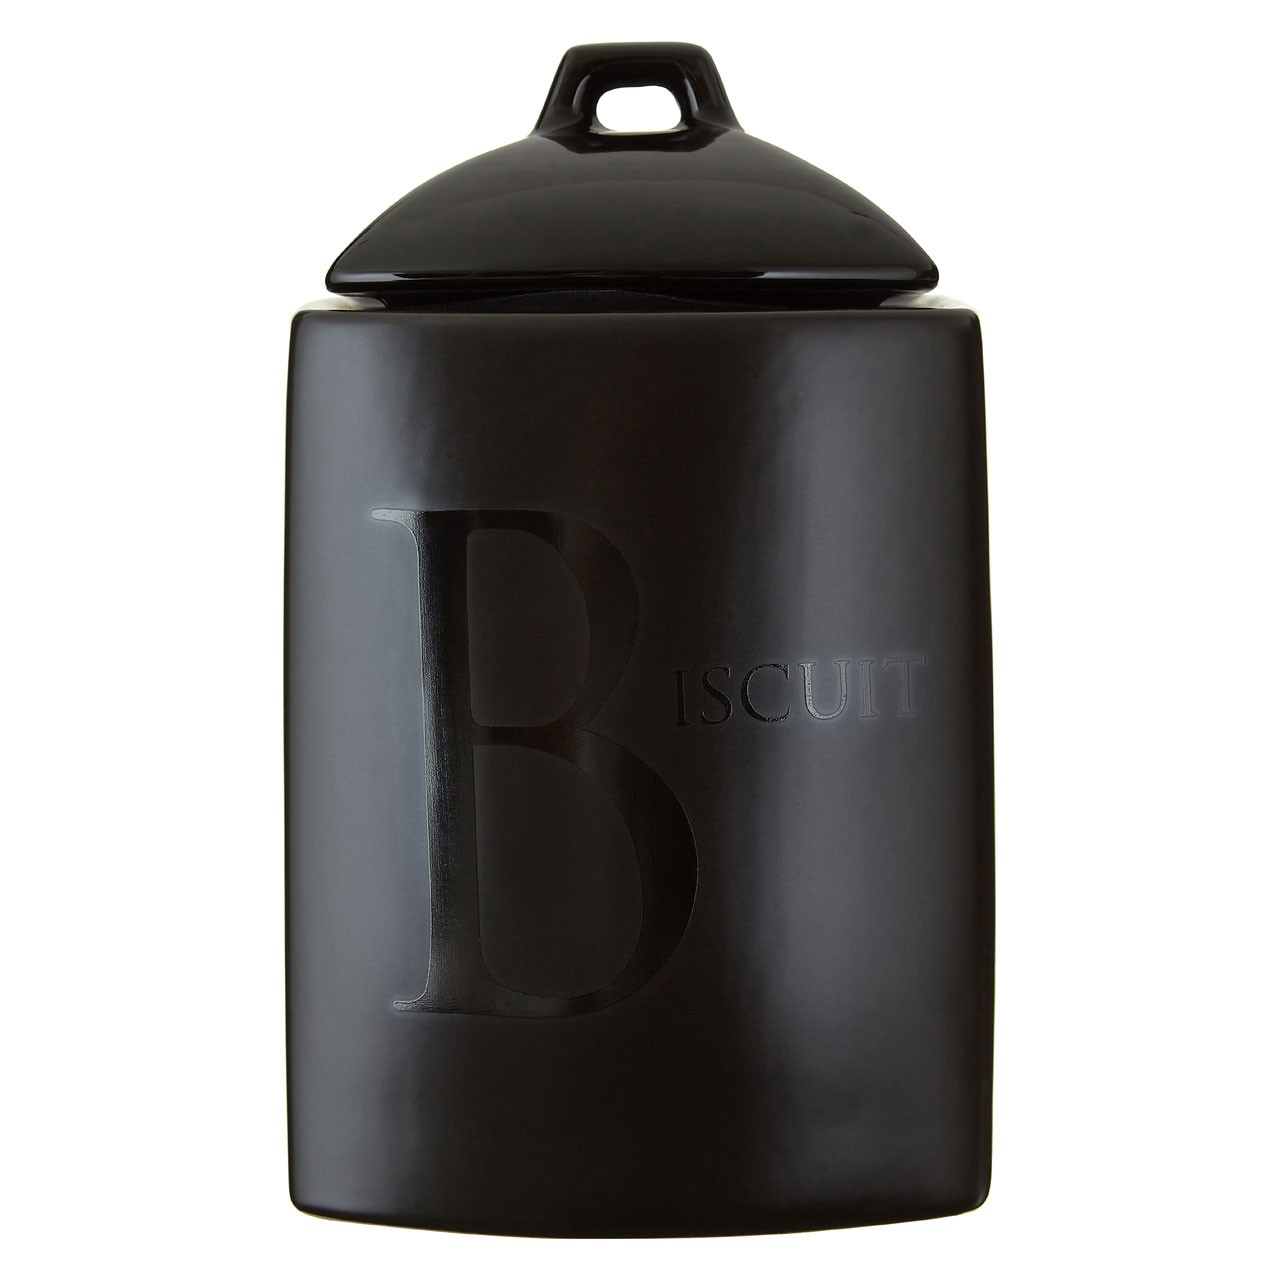 Black Text Biscuit Jar Sleek and Stylish Storage